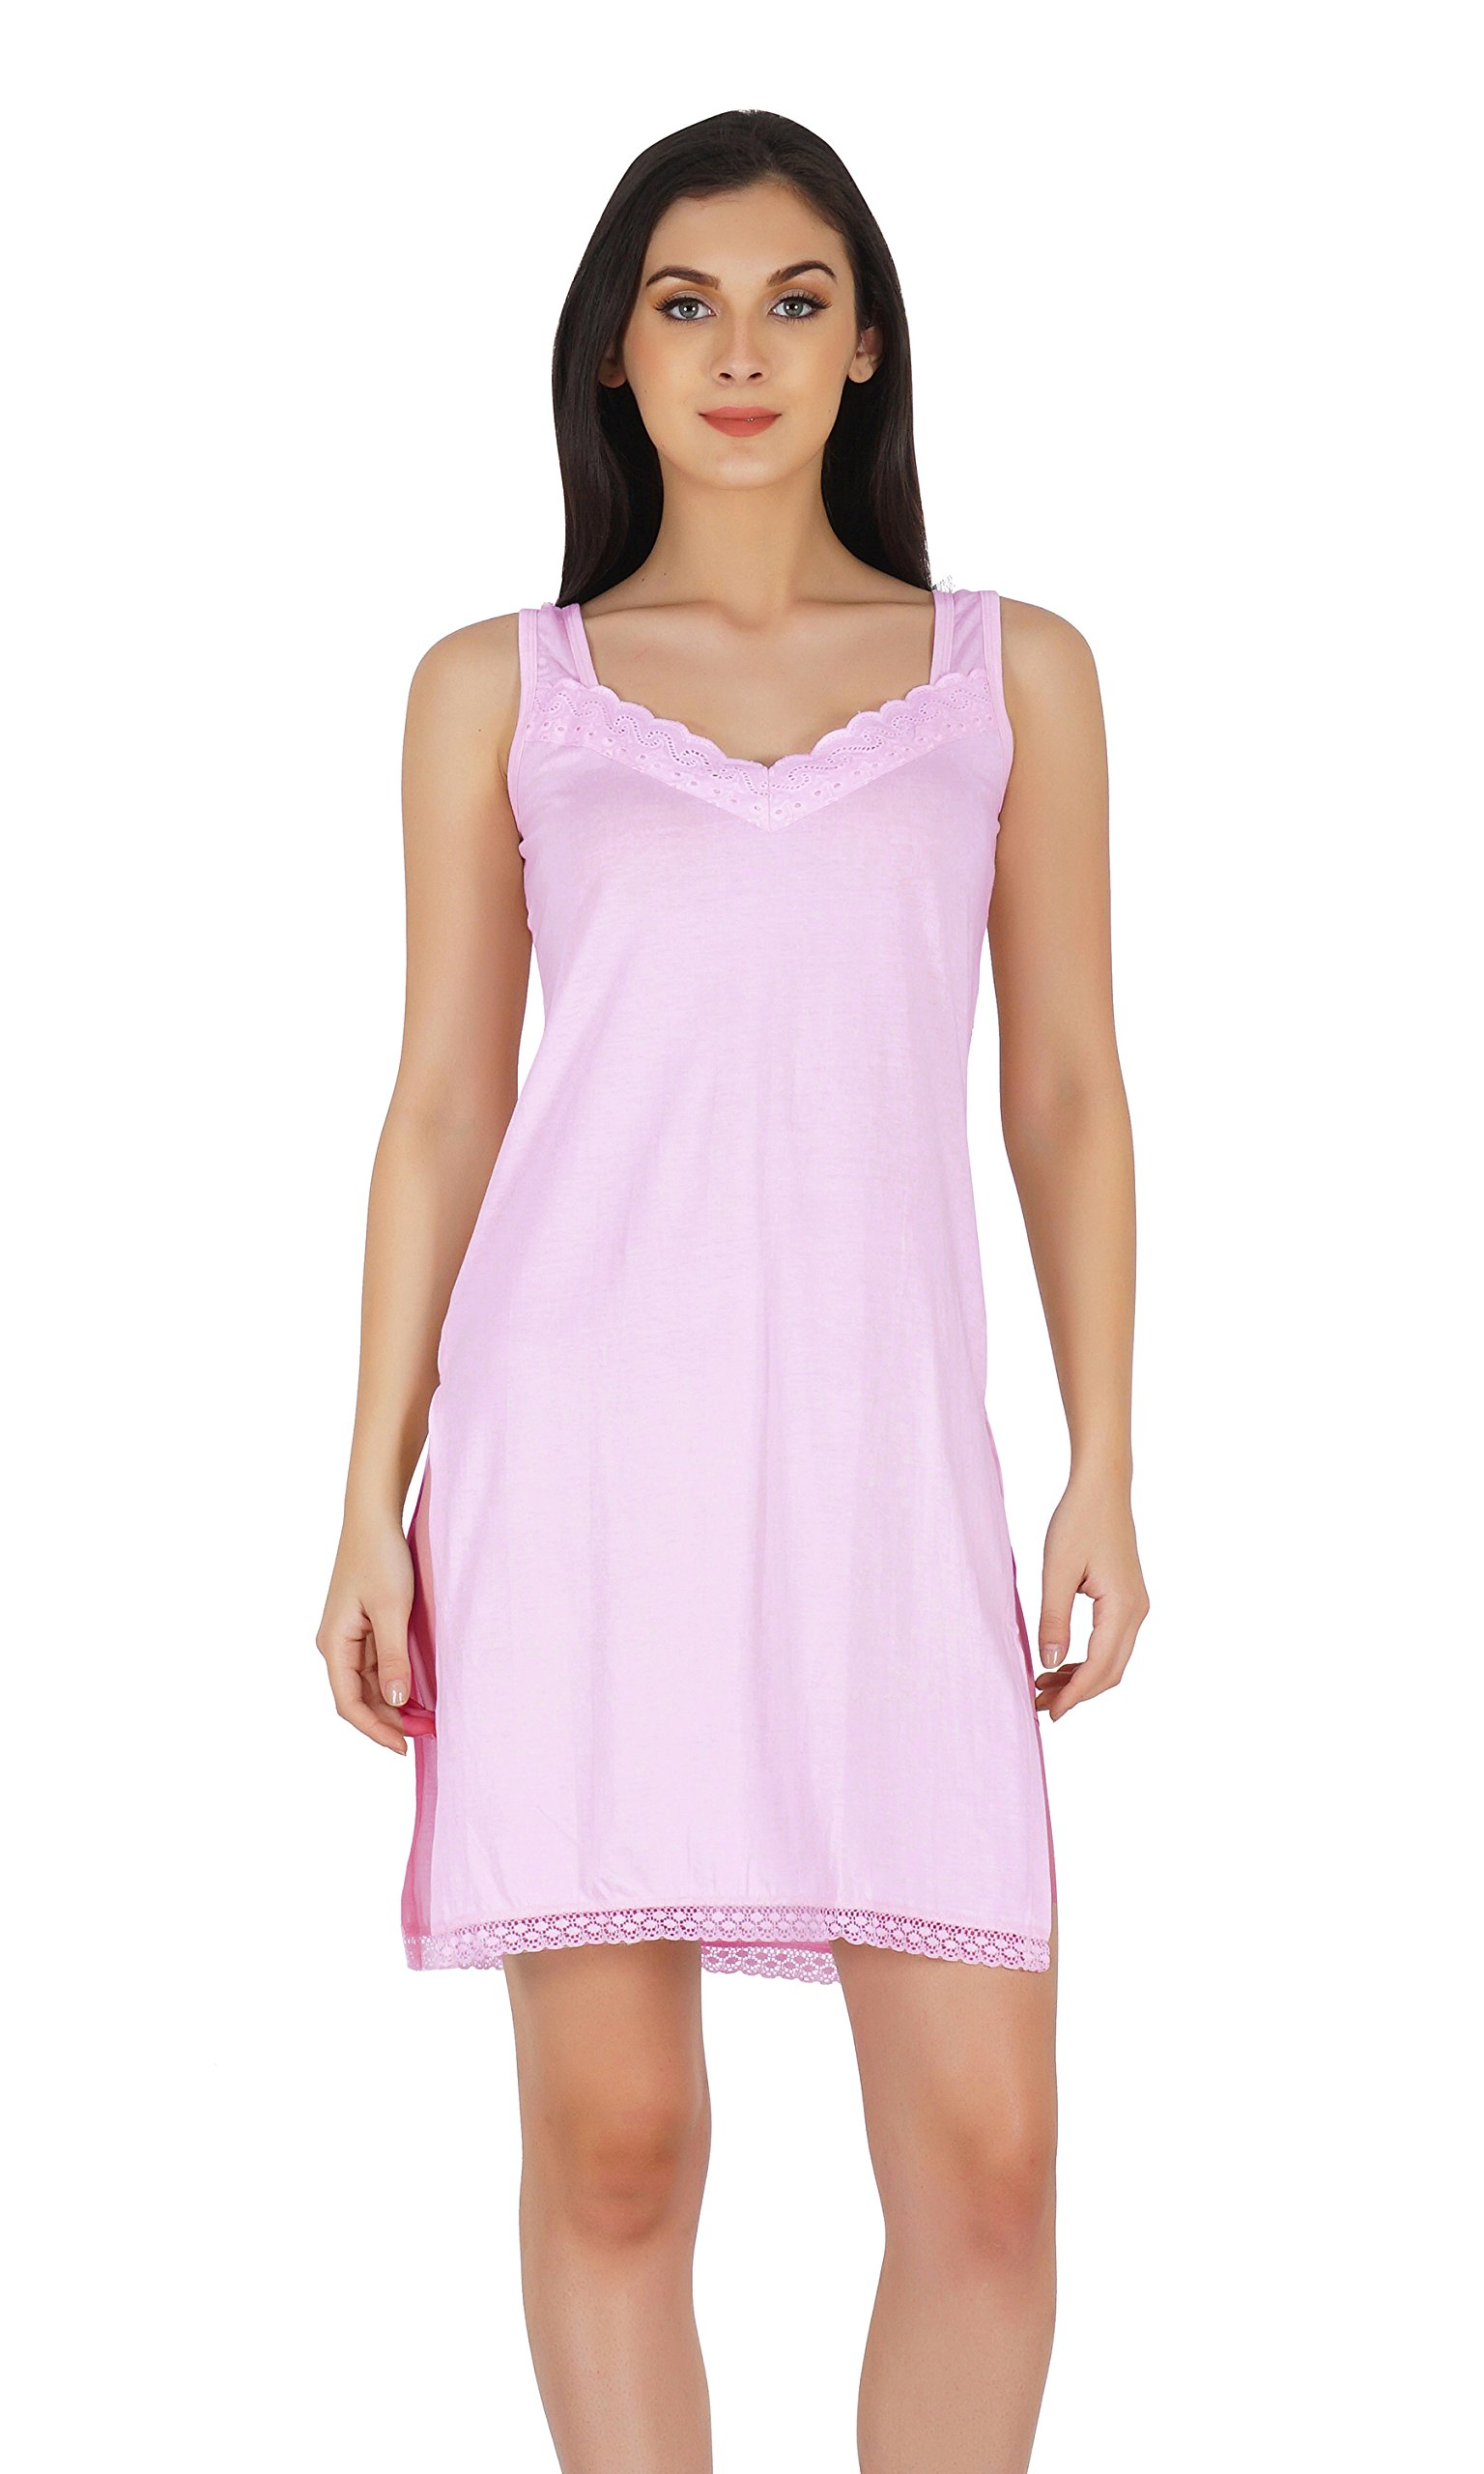 Cotton Full Slip Camisole